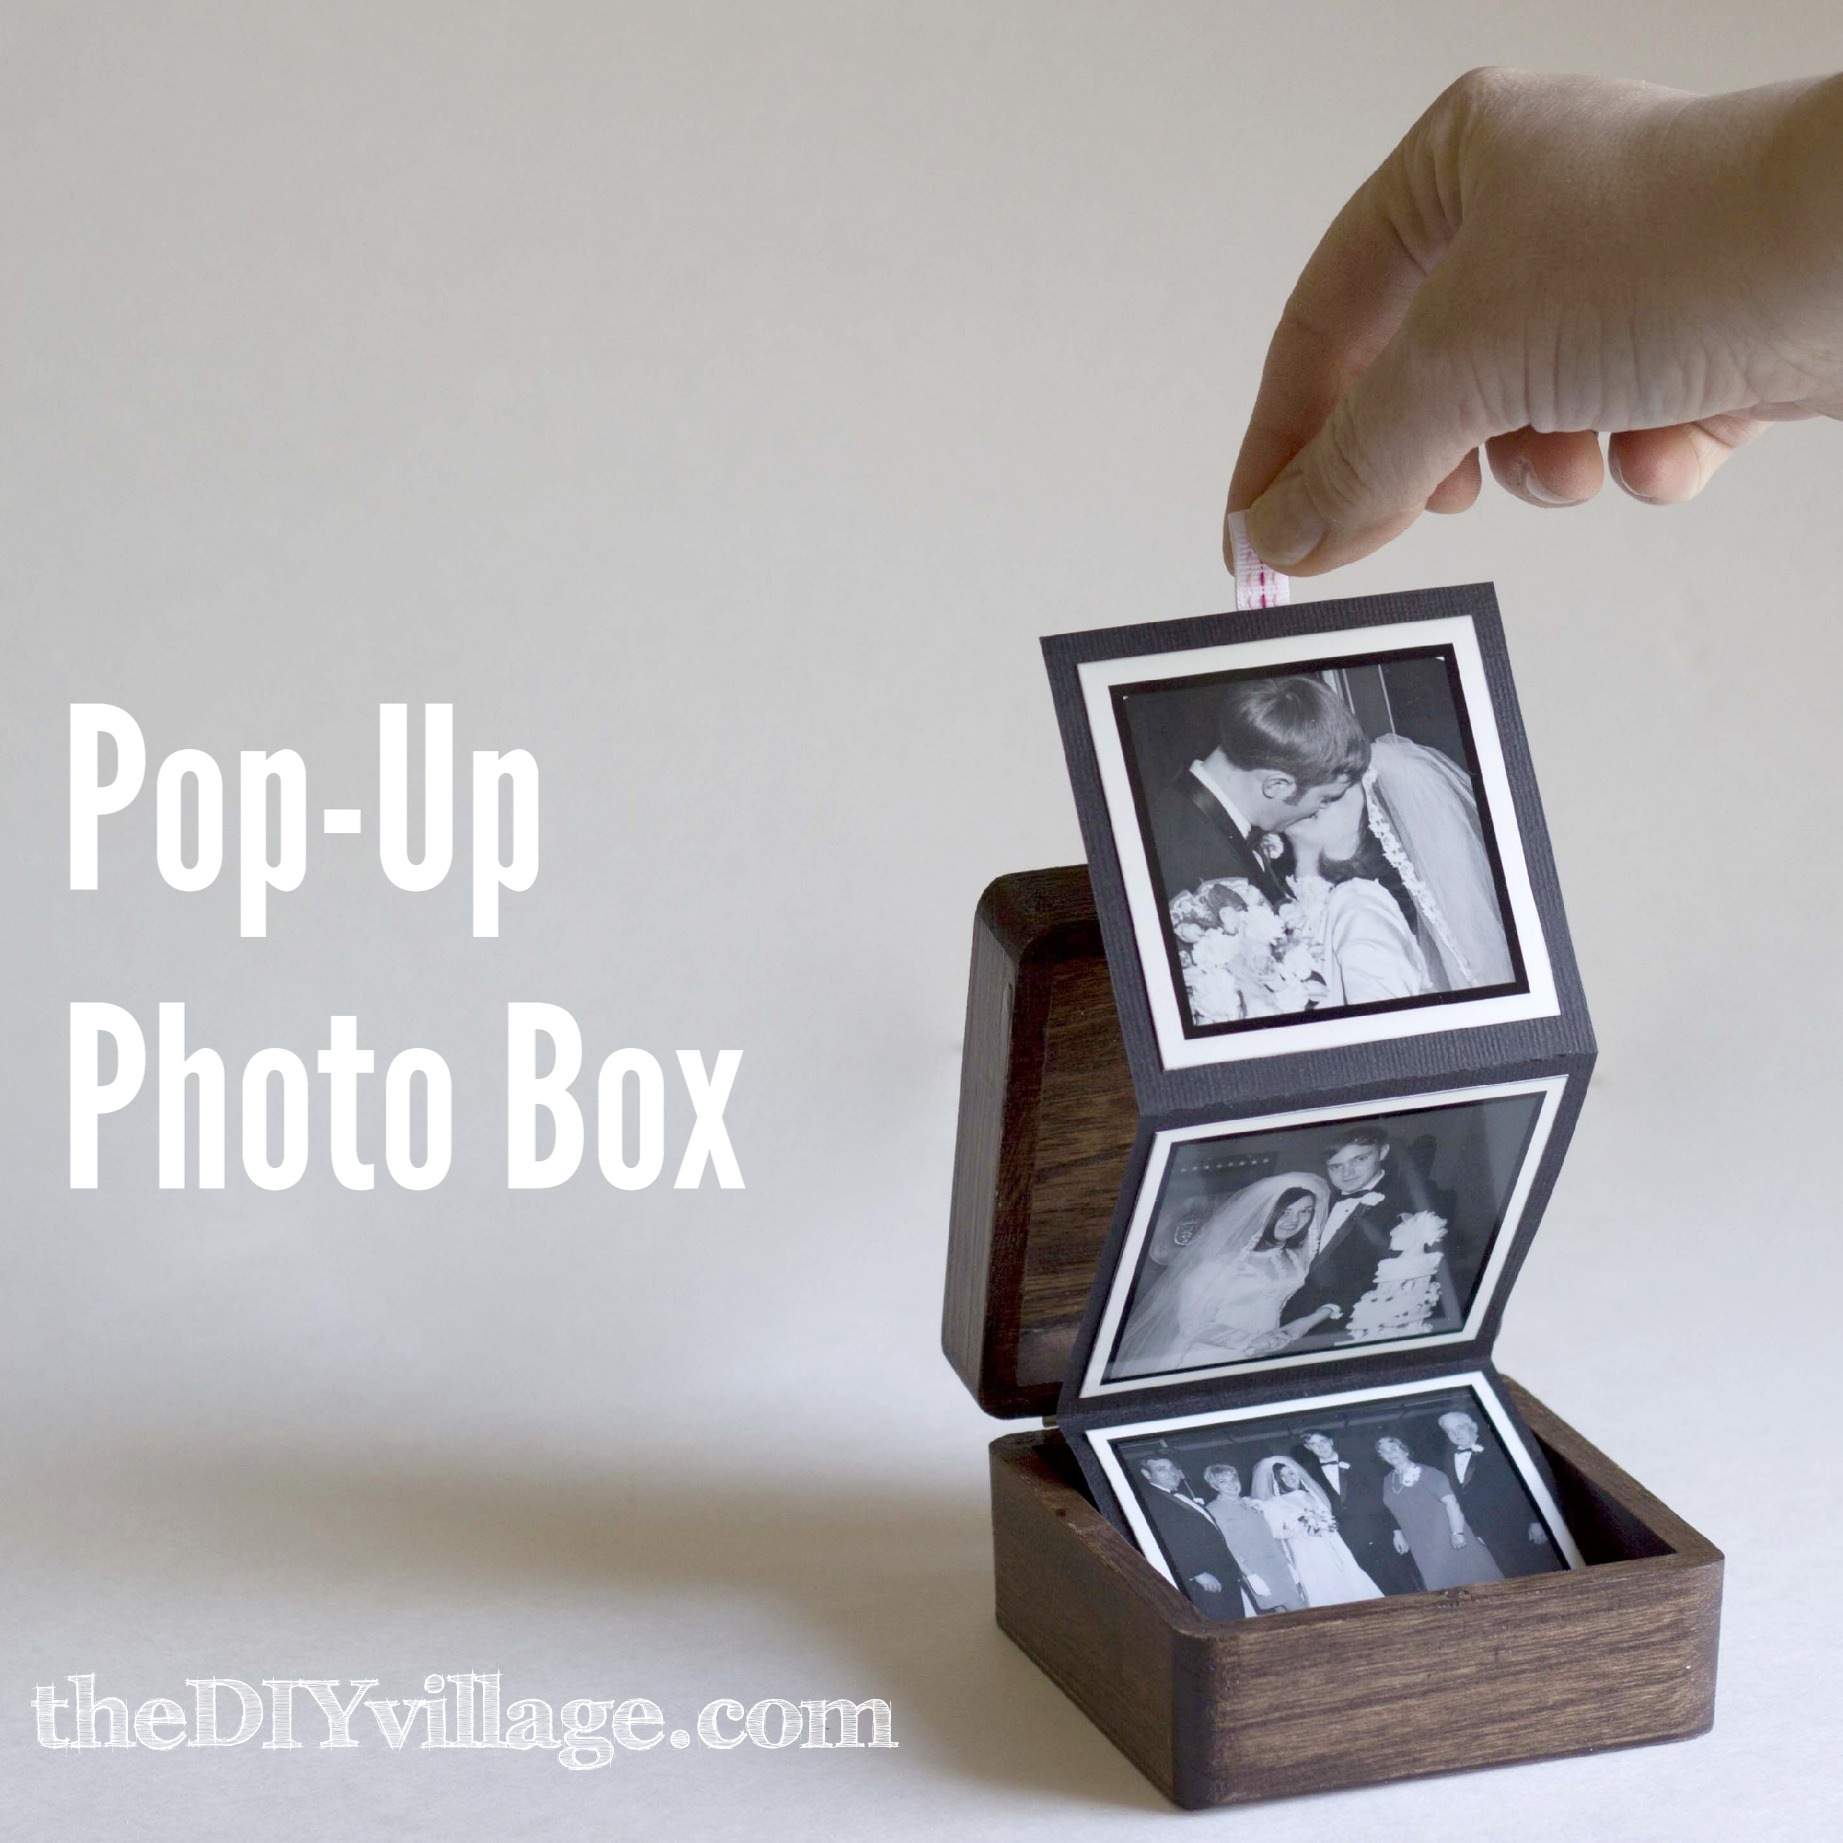 Regaling Boyfriend 2 Years Diy Anniversary Gifts Pop Up Photo Box Gift Idea By Diyvillage Com Diy Anniversary Gifts Him 3 Years gifts Diy Anniversary Gifts For Him